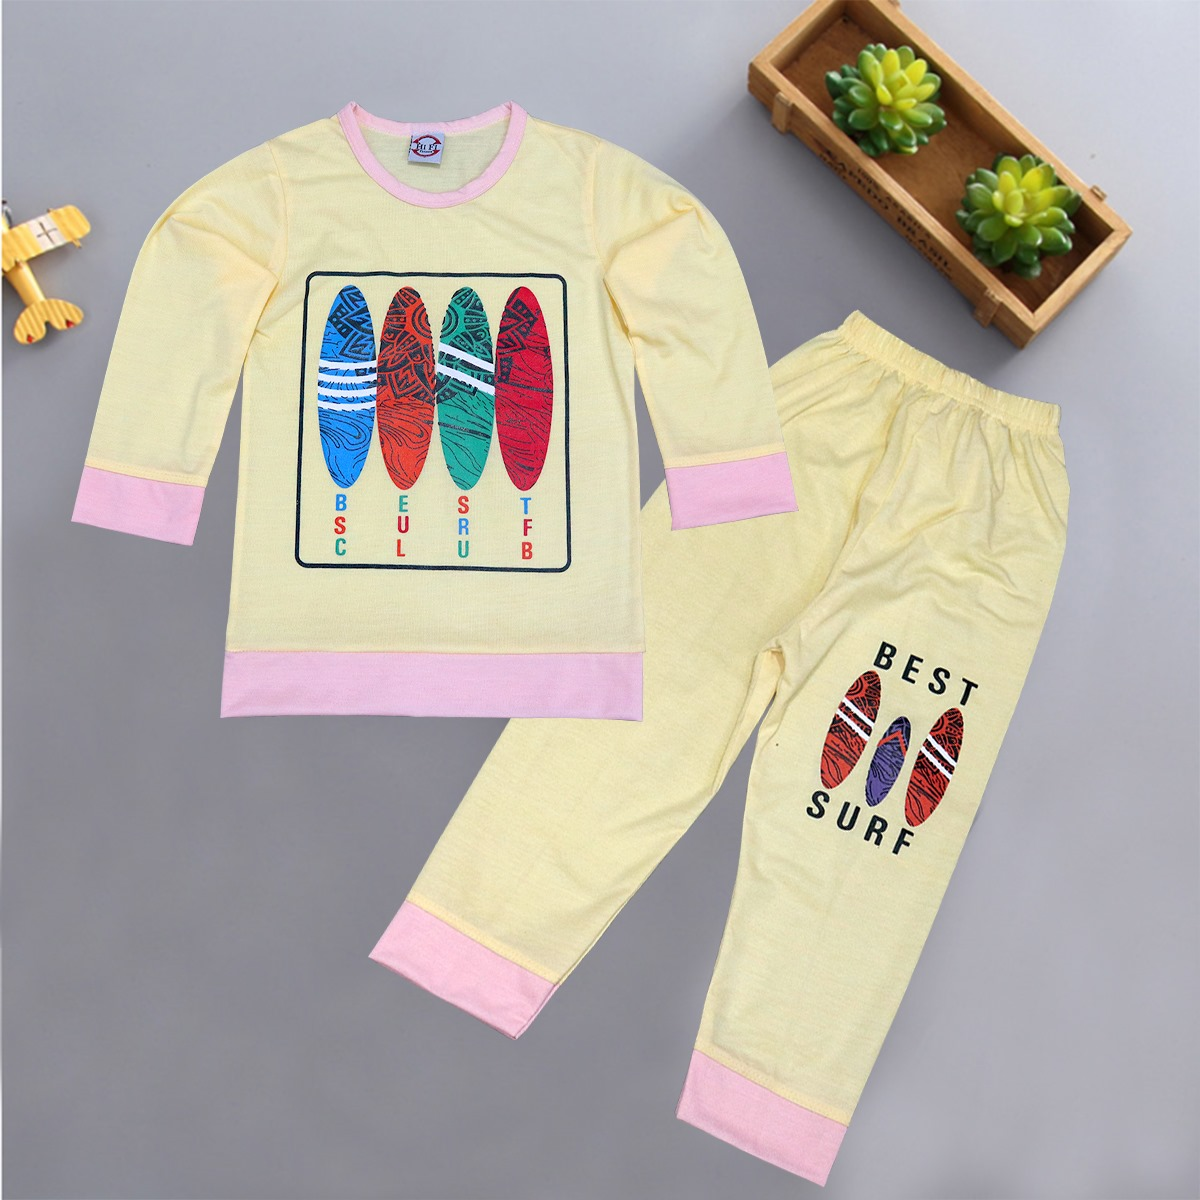 2 Piece Soft Fabric Printed Suit For Kids.